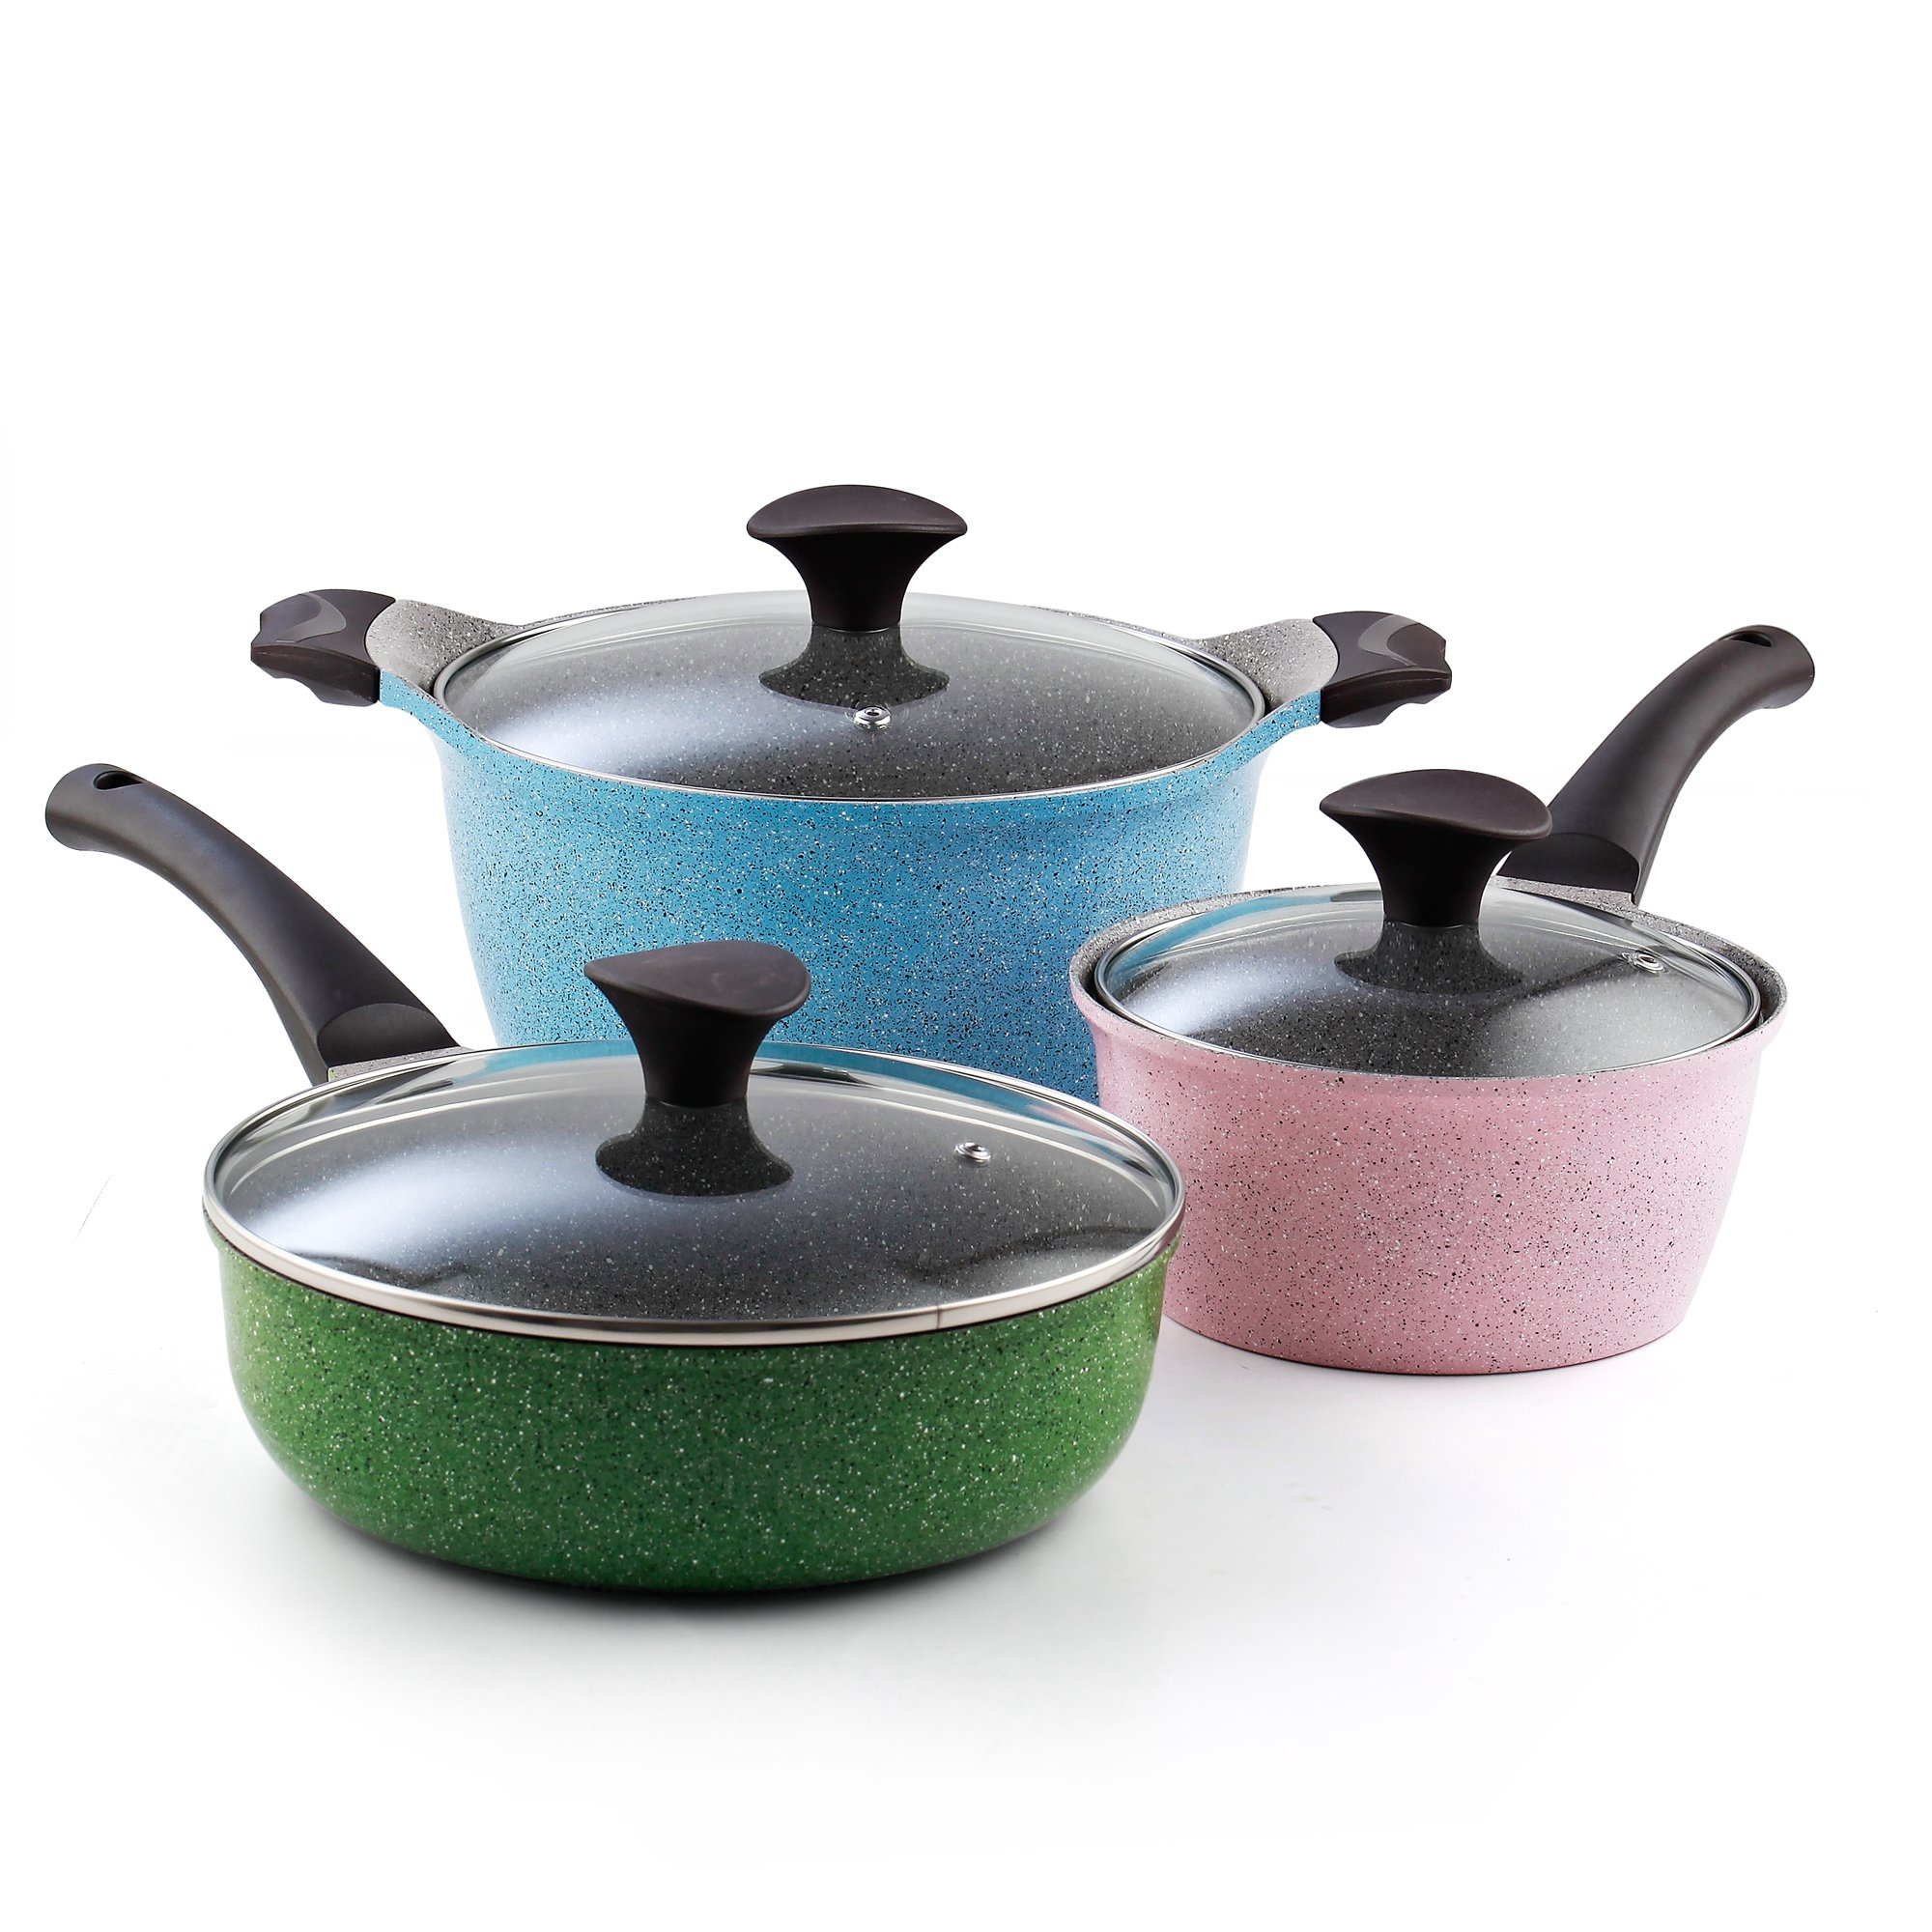 Cook N Home 6-Piece Nonstick Ceramic Coating Cookware Set, Multicolor